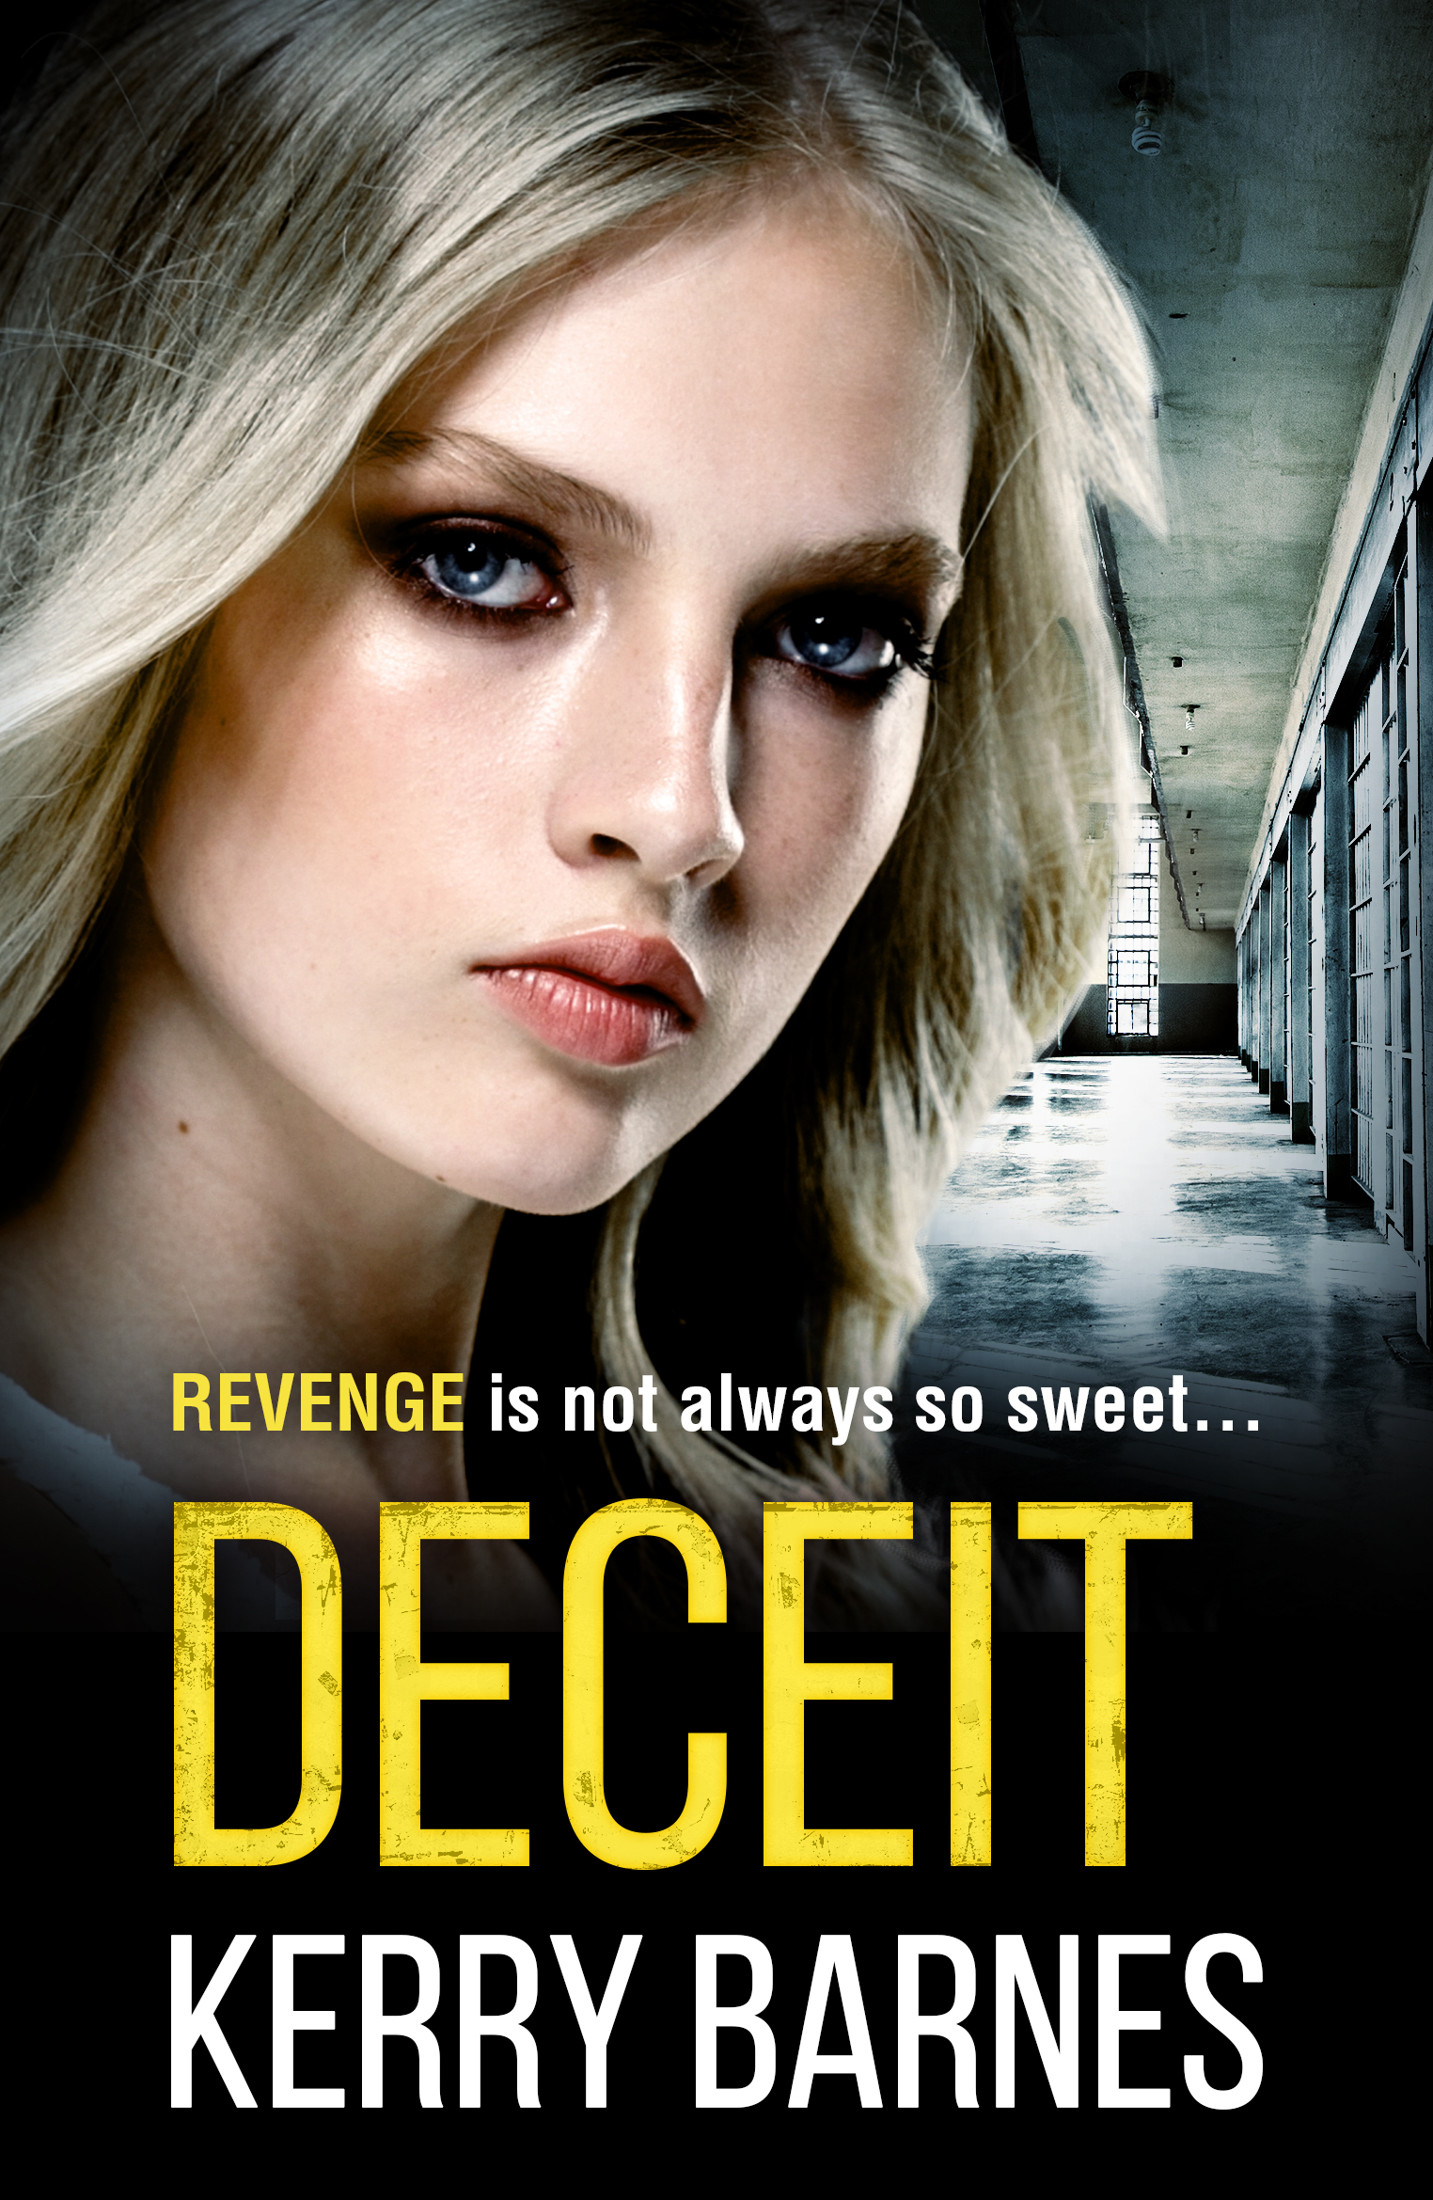 Kerry Barnes Deceit: A gripping, gritty crime thriller that will have you hooked marnie riches the cover up a gripping crime thriller for 2018